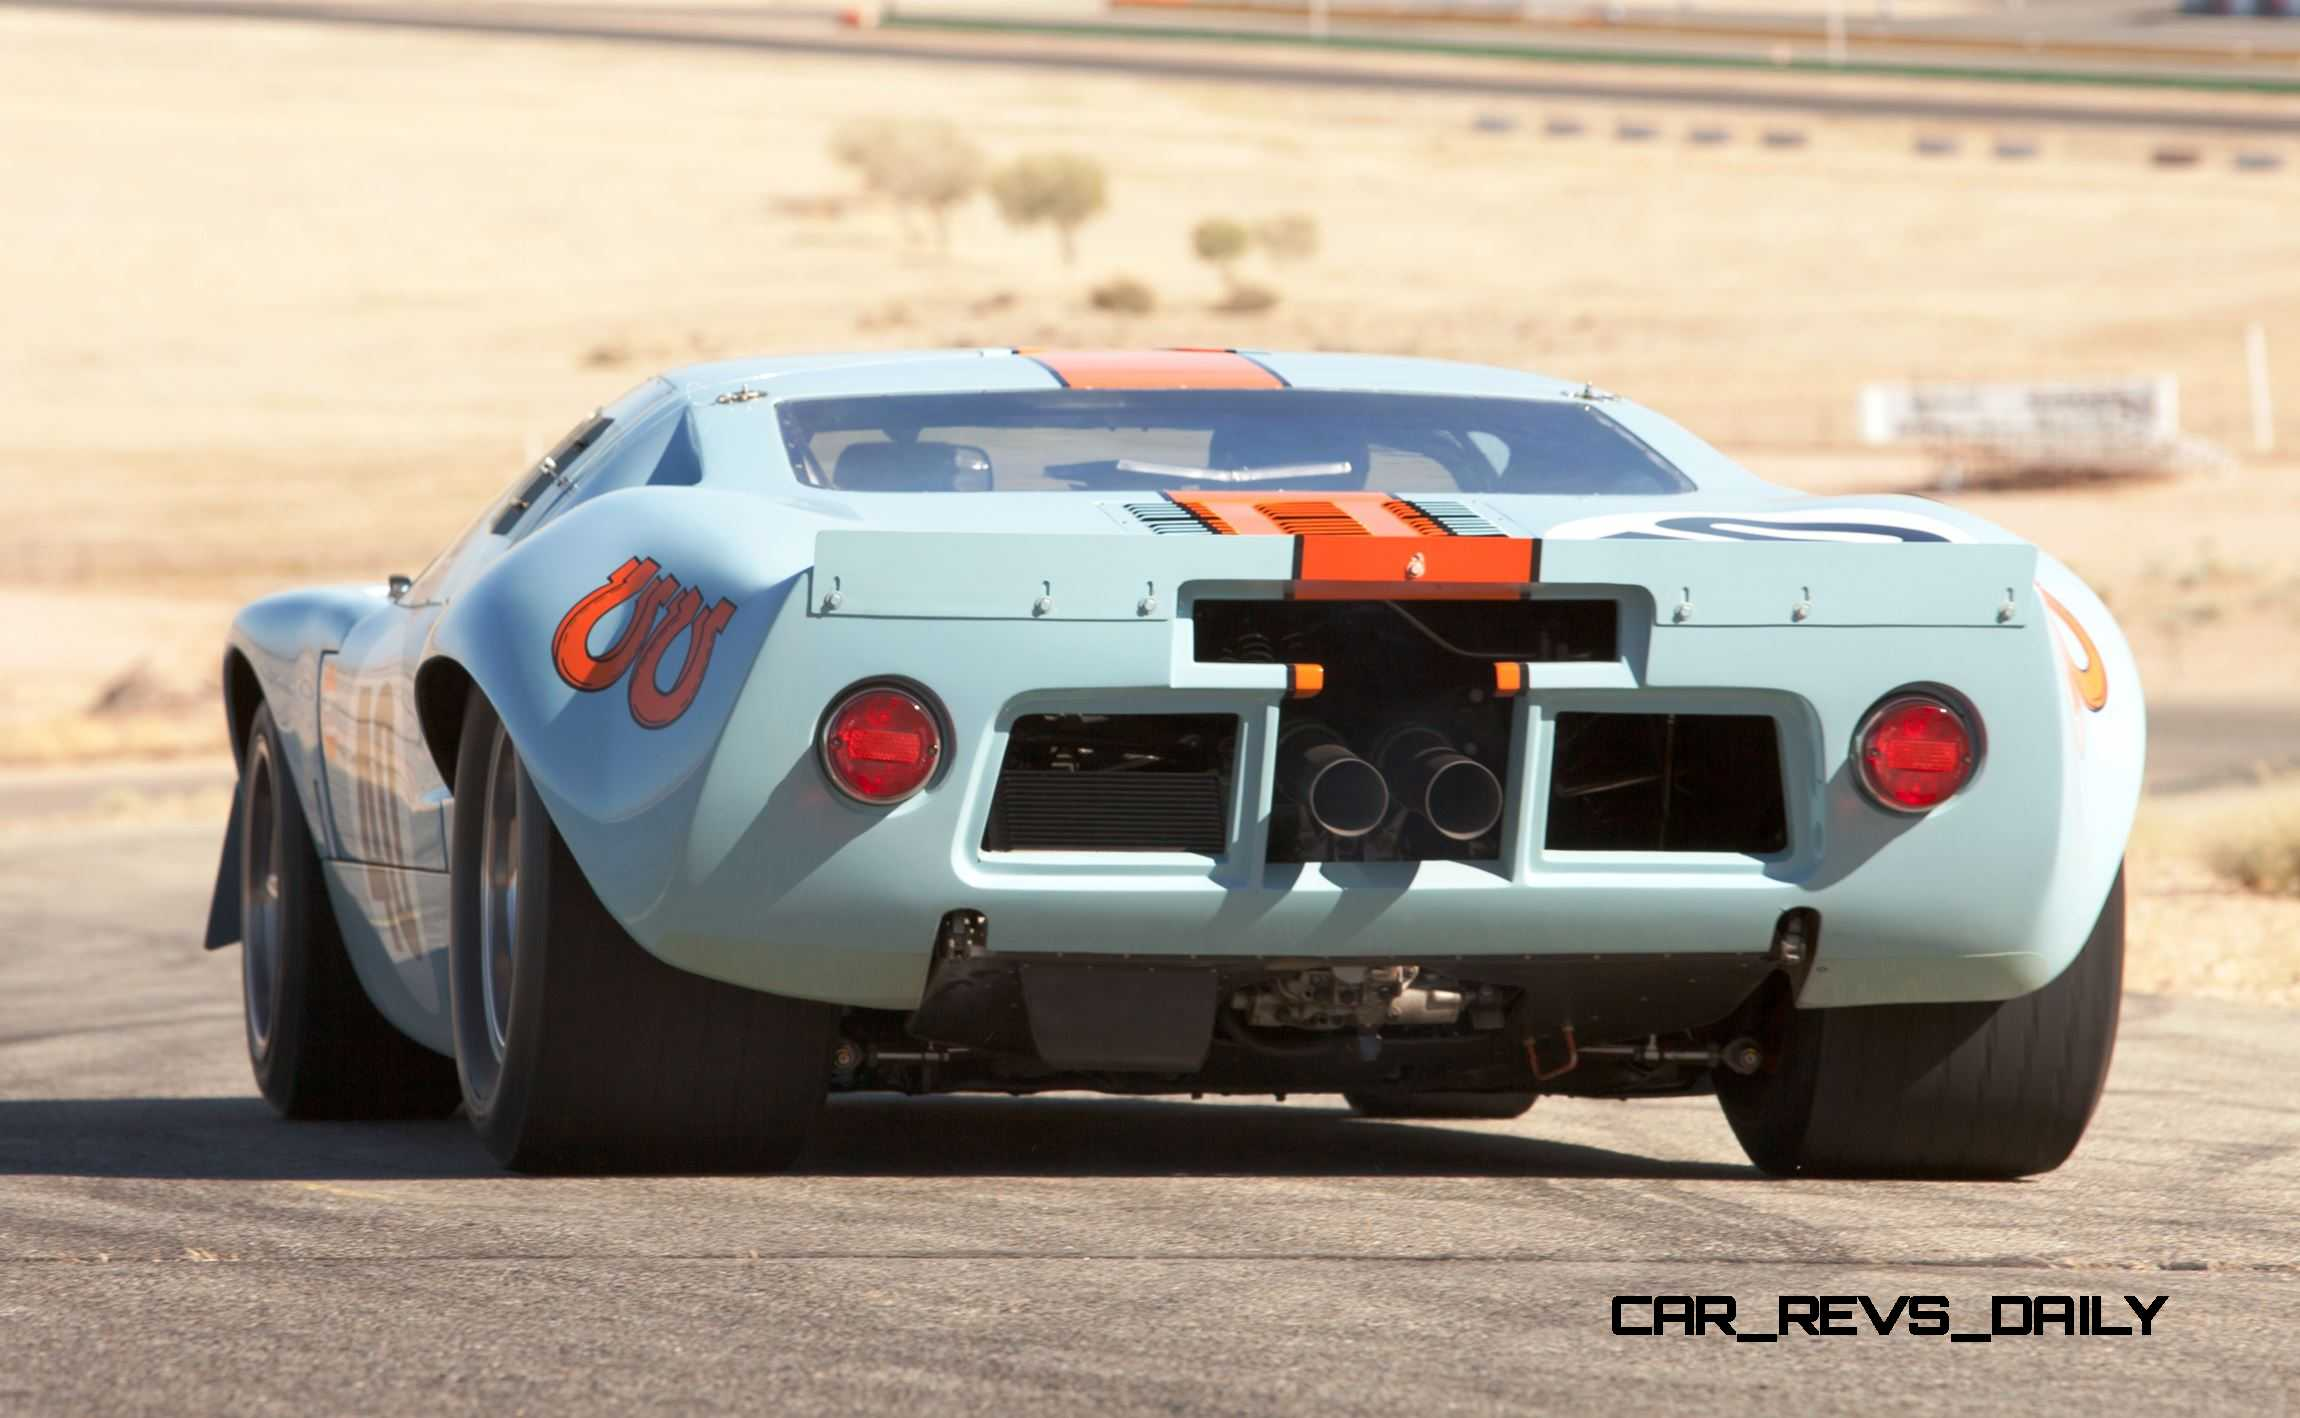 1968 Ford GT40 Gulf Mirage Lightweight LM Racecar – Most Valuable ...